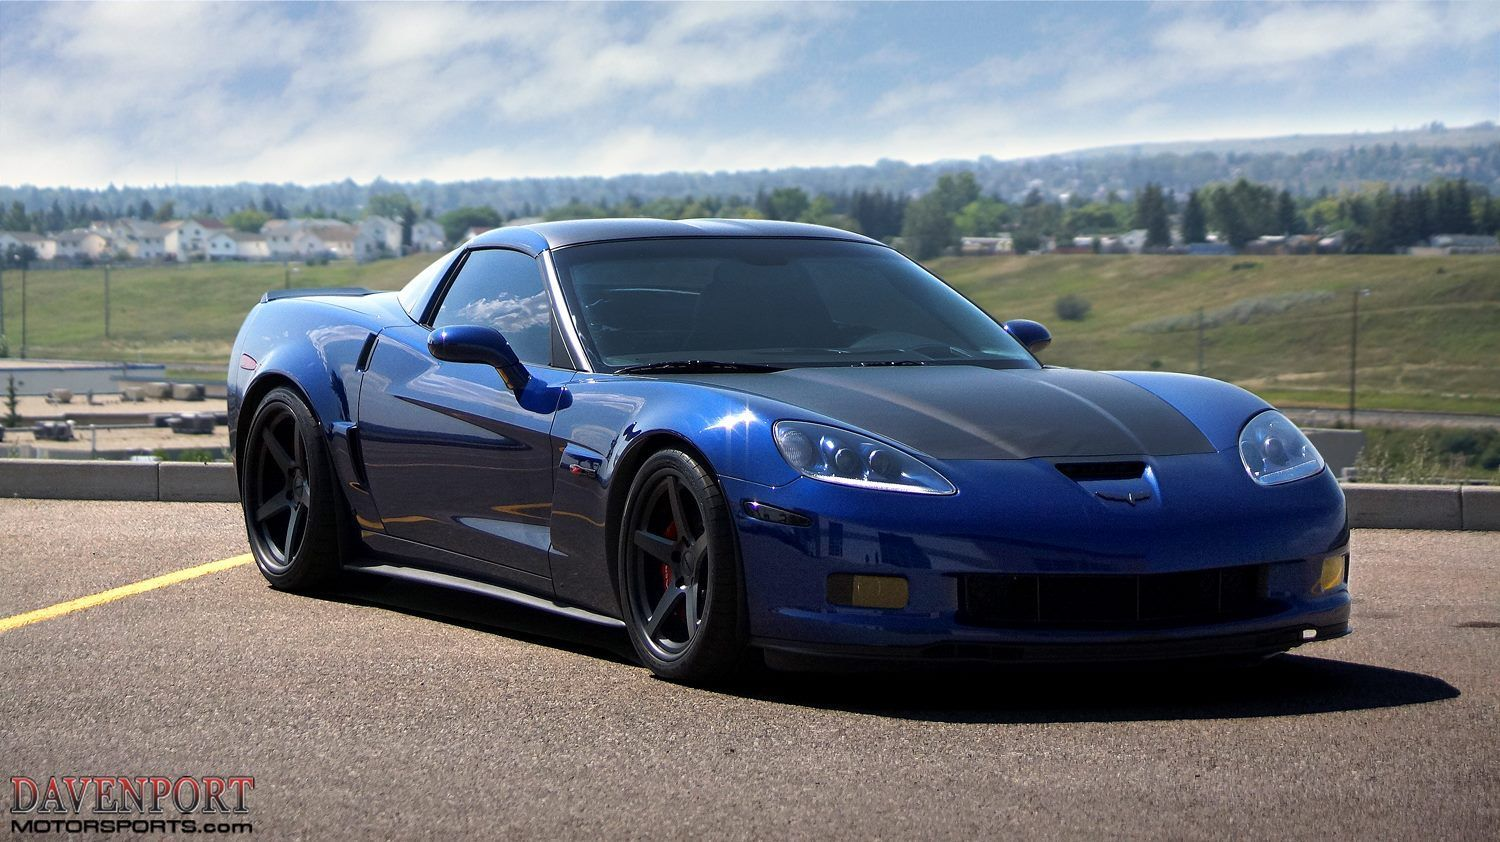 2013 Chevrolet Corvette Z06 | 660+HP All-Motor Davenport Motorsports C6 Corvette Z06 on Forgeline CF3C Concave Wheels